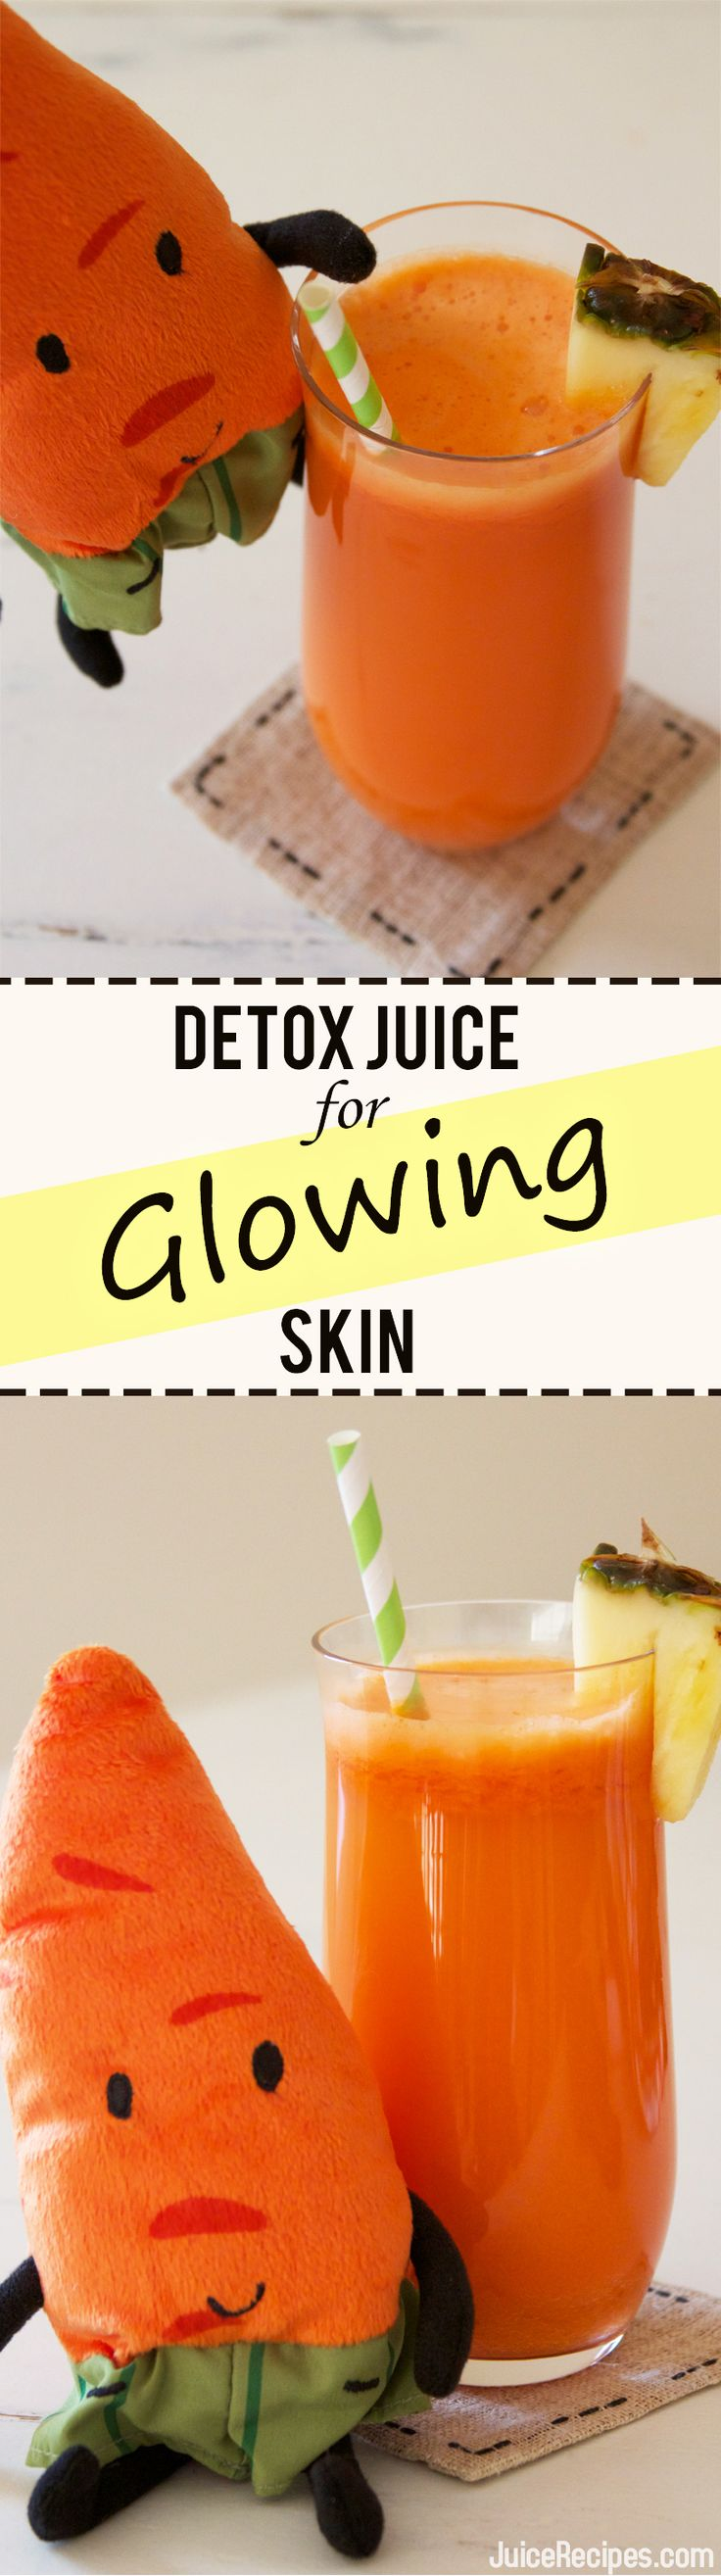 best smoothies and tasty drinks images on pinterest healthy